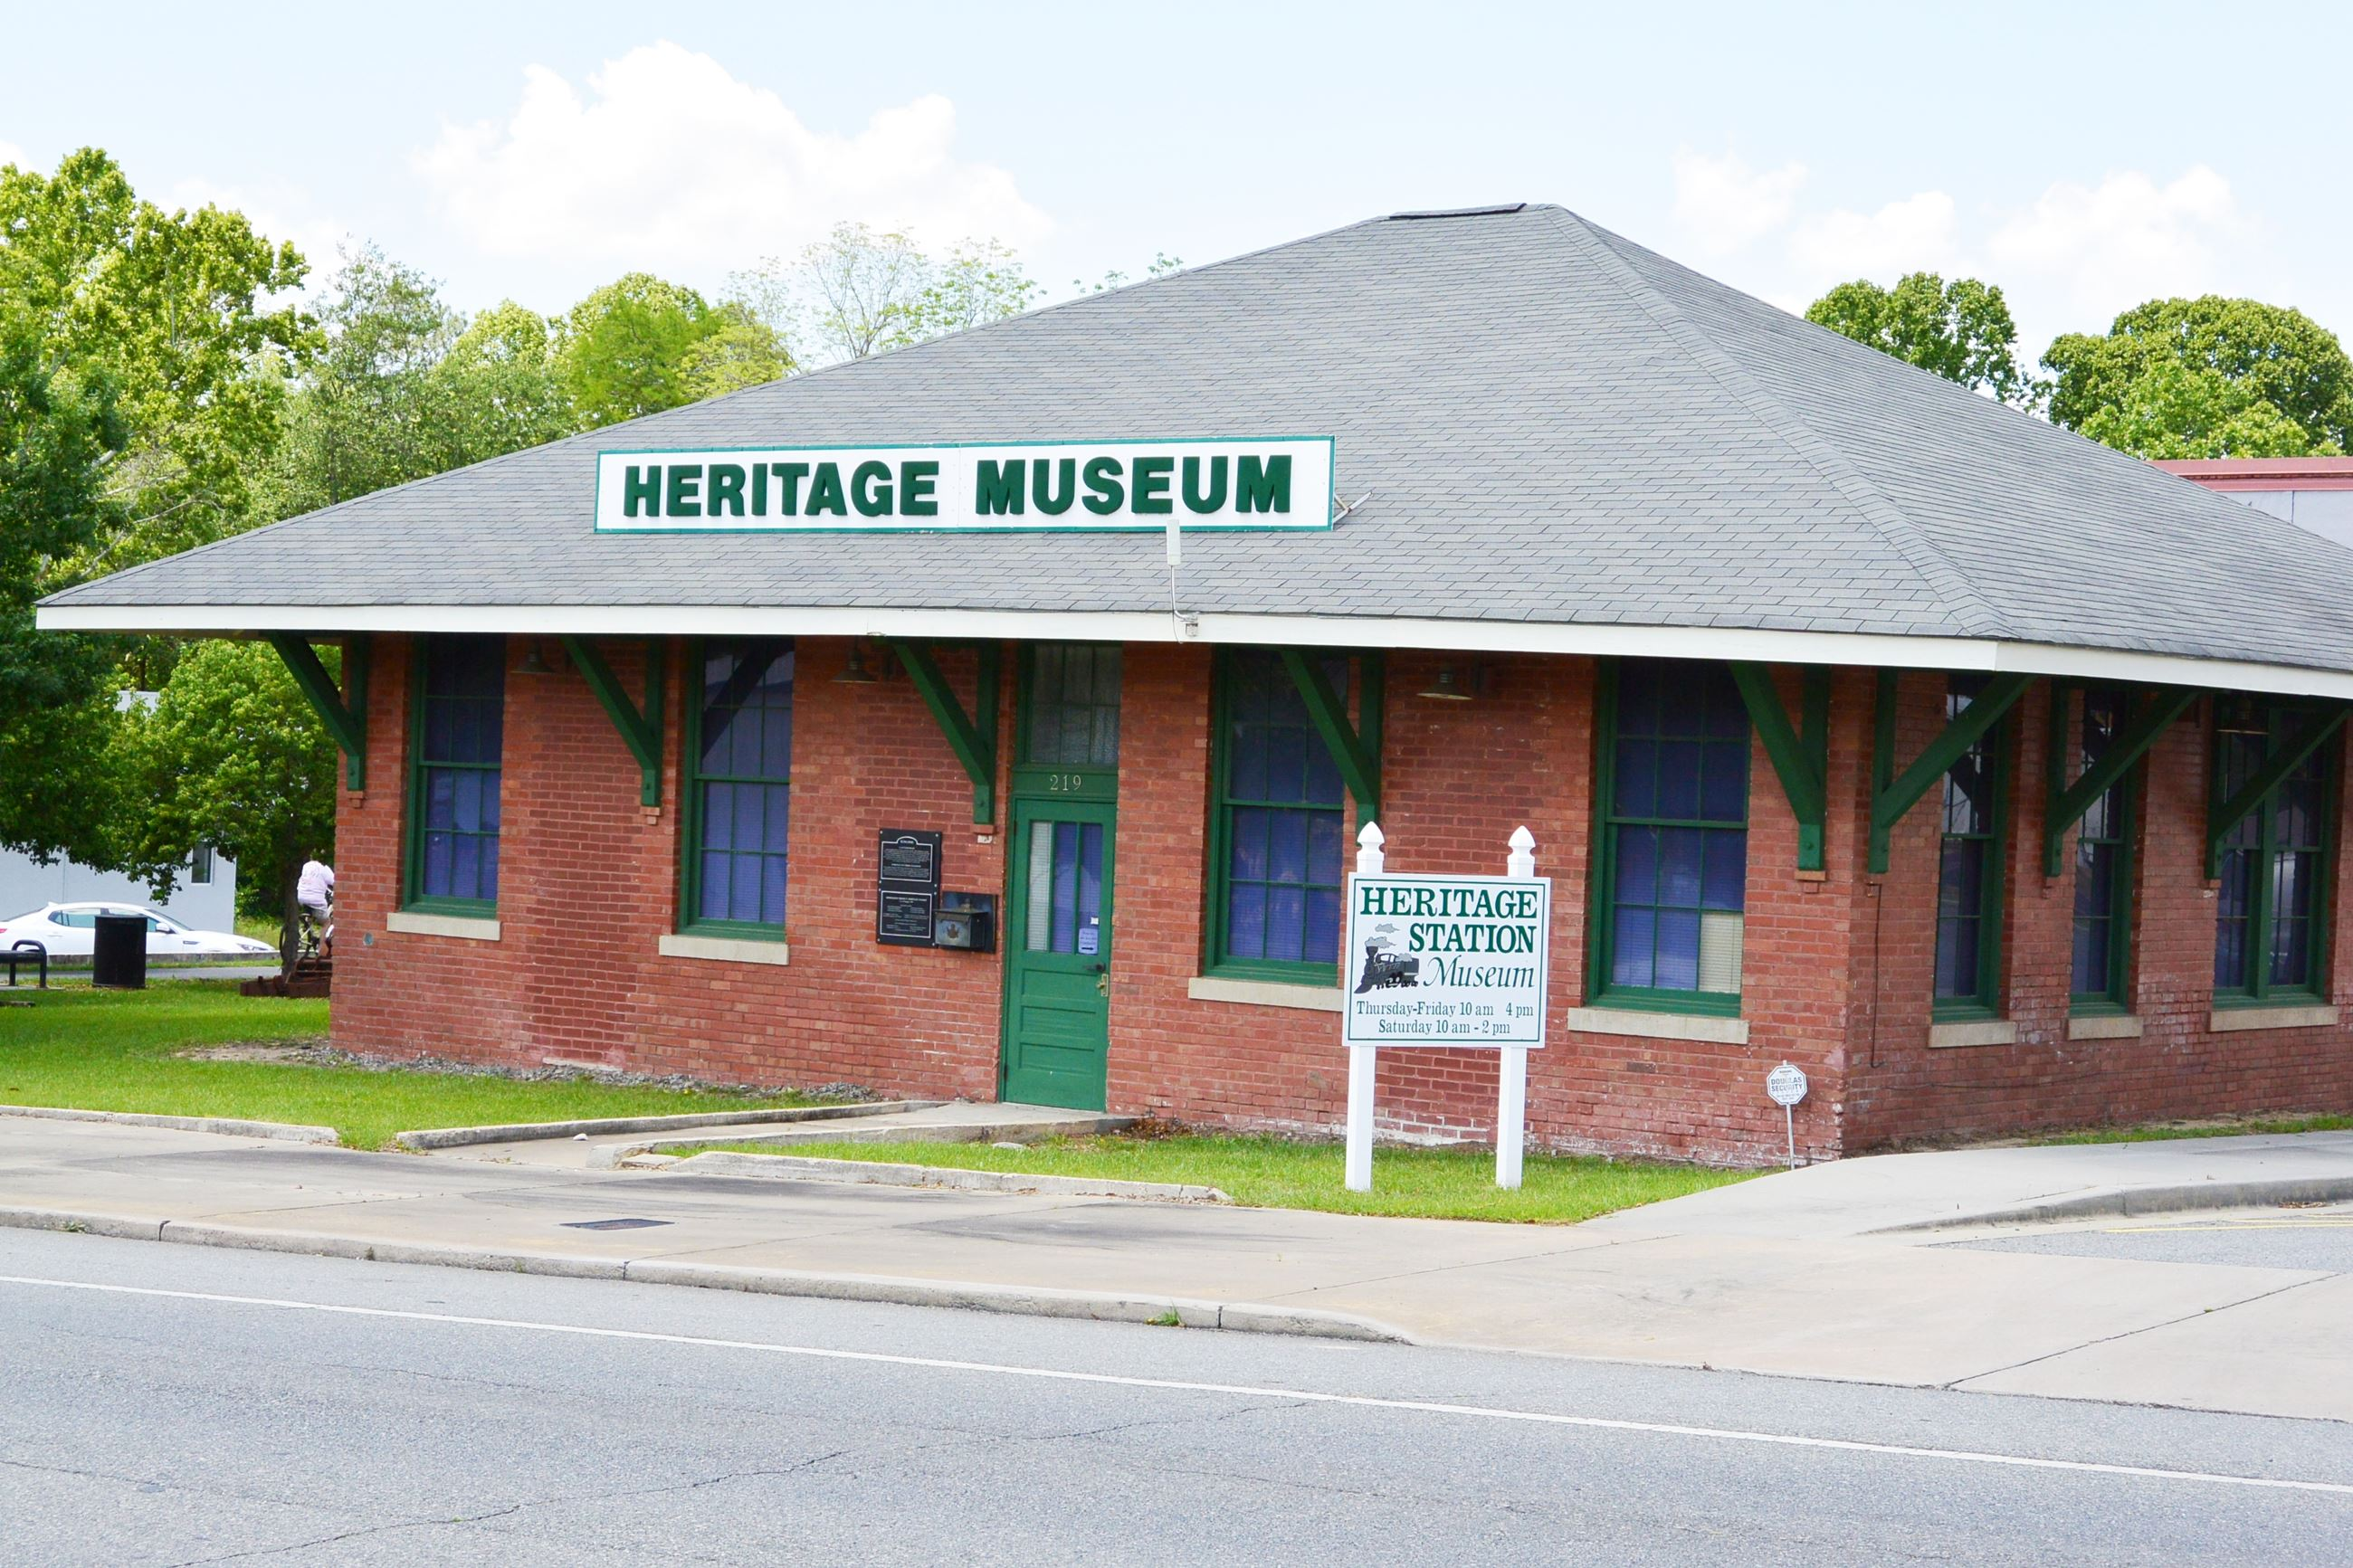 Heritage Station Museum - Outside Photo